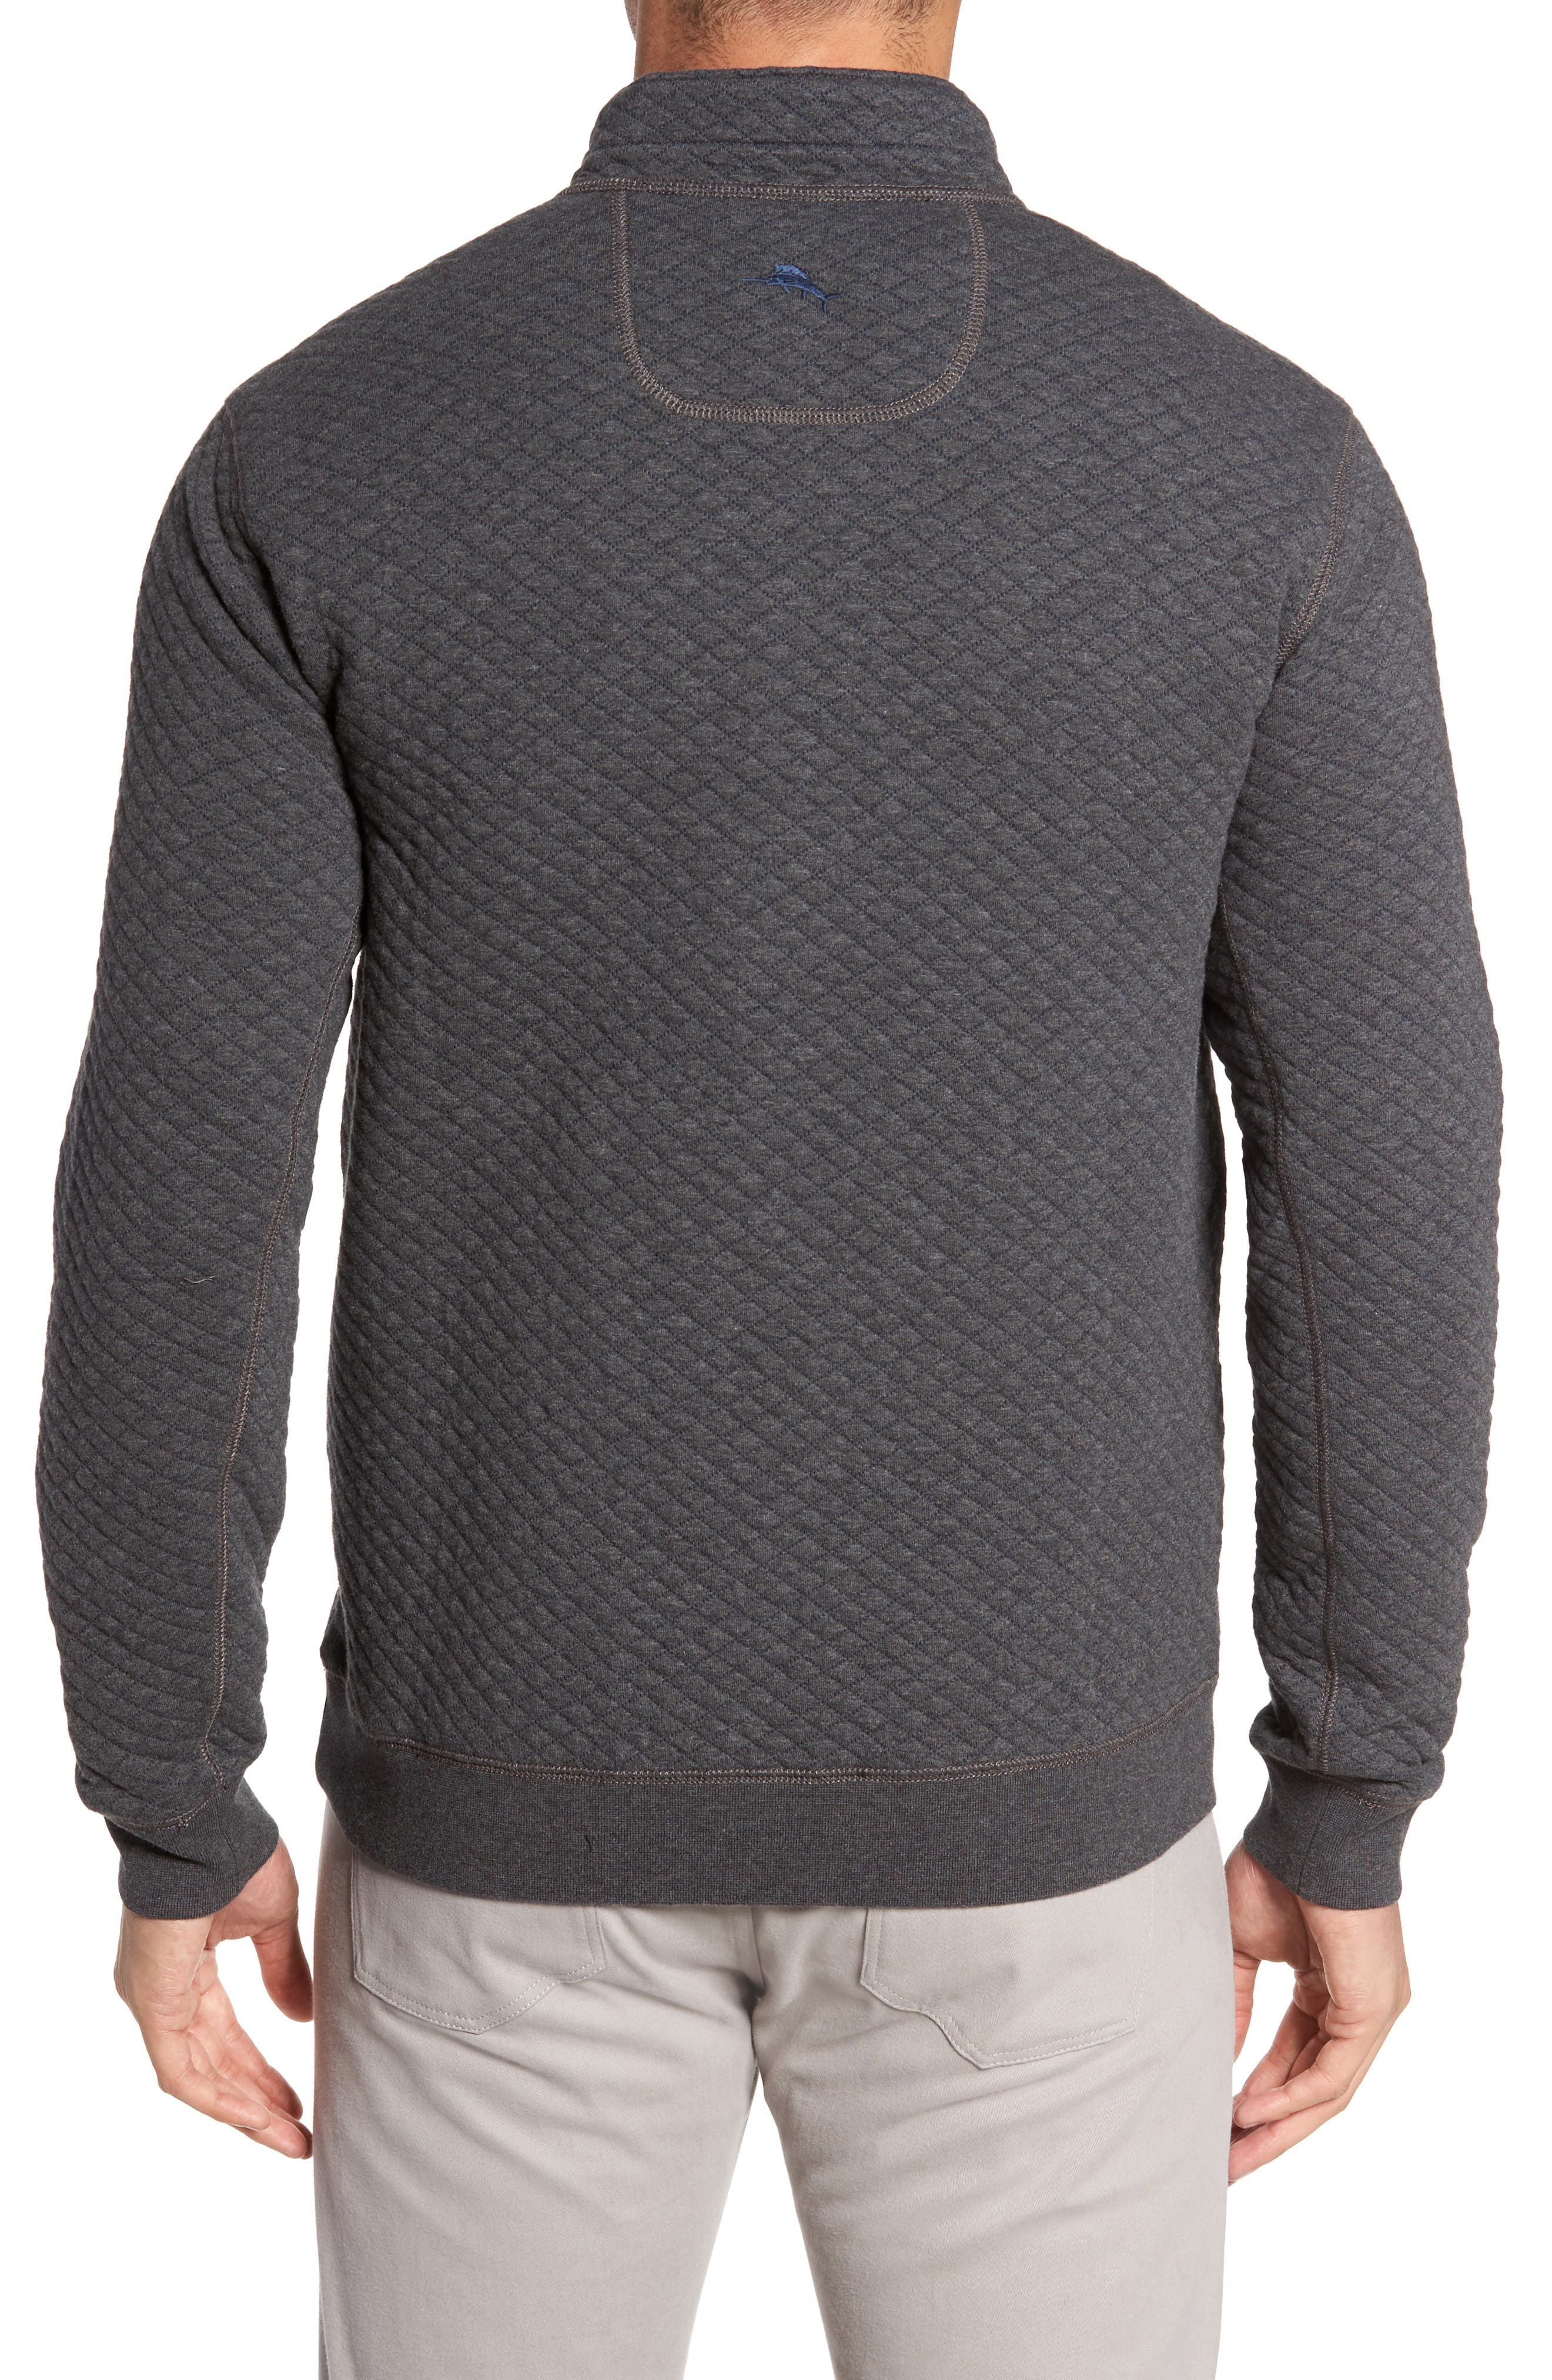 Quiltessential Standard Fit Quarter Zip Pullover,                             Alternate thumbnail 2, color,                             Charcoal Heather